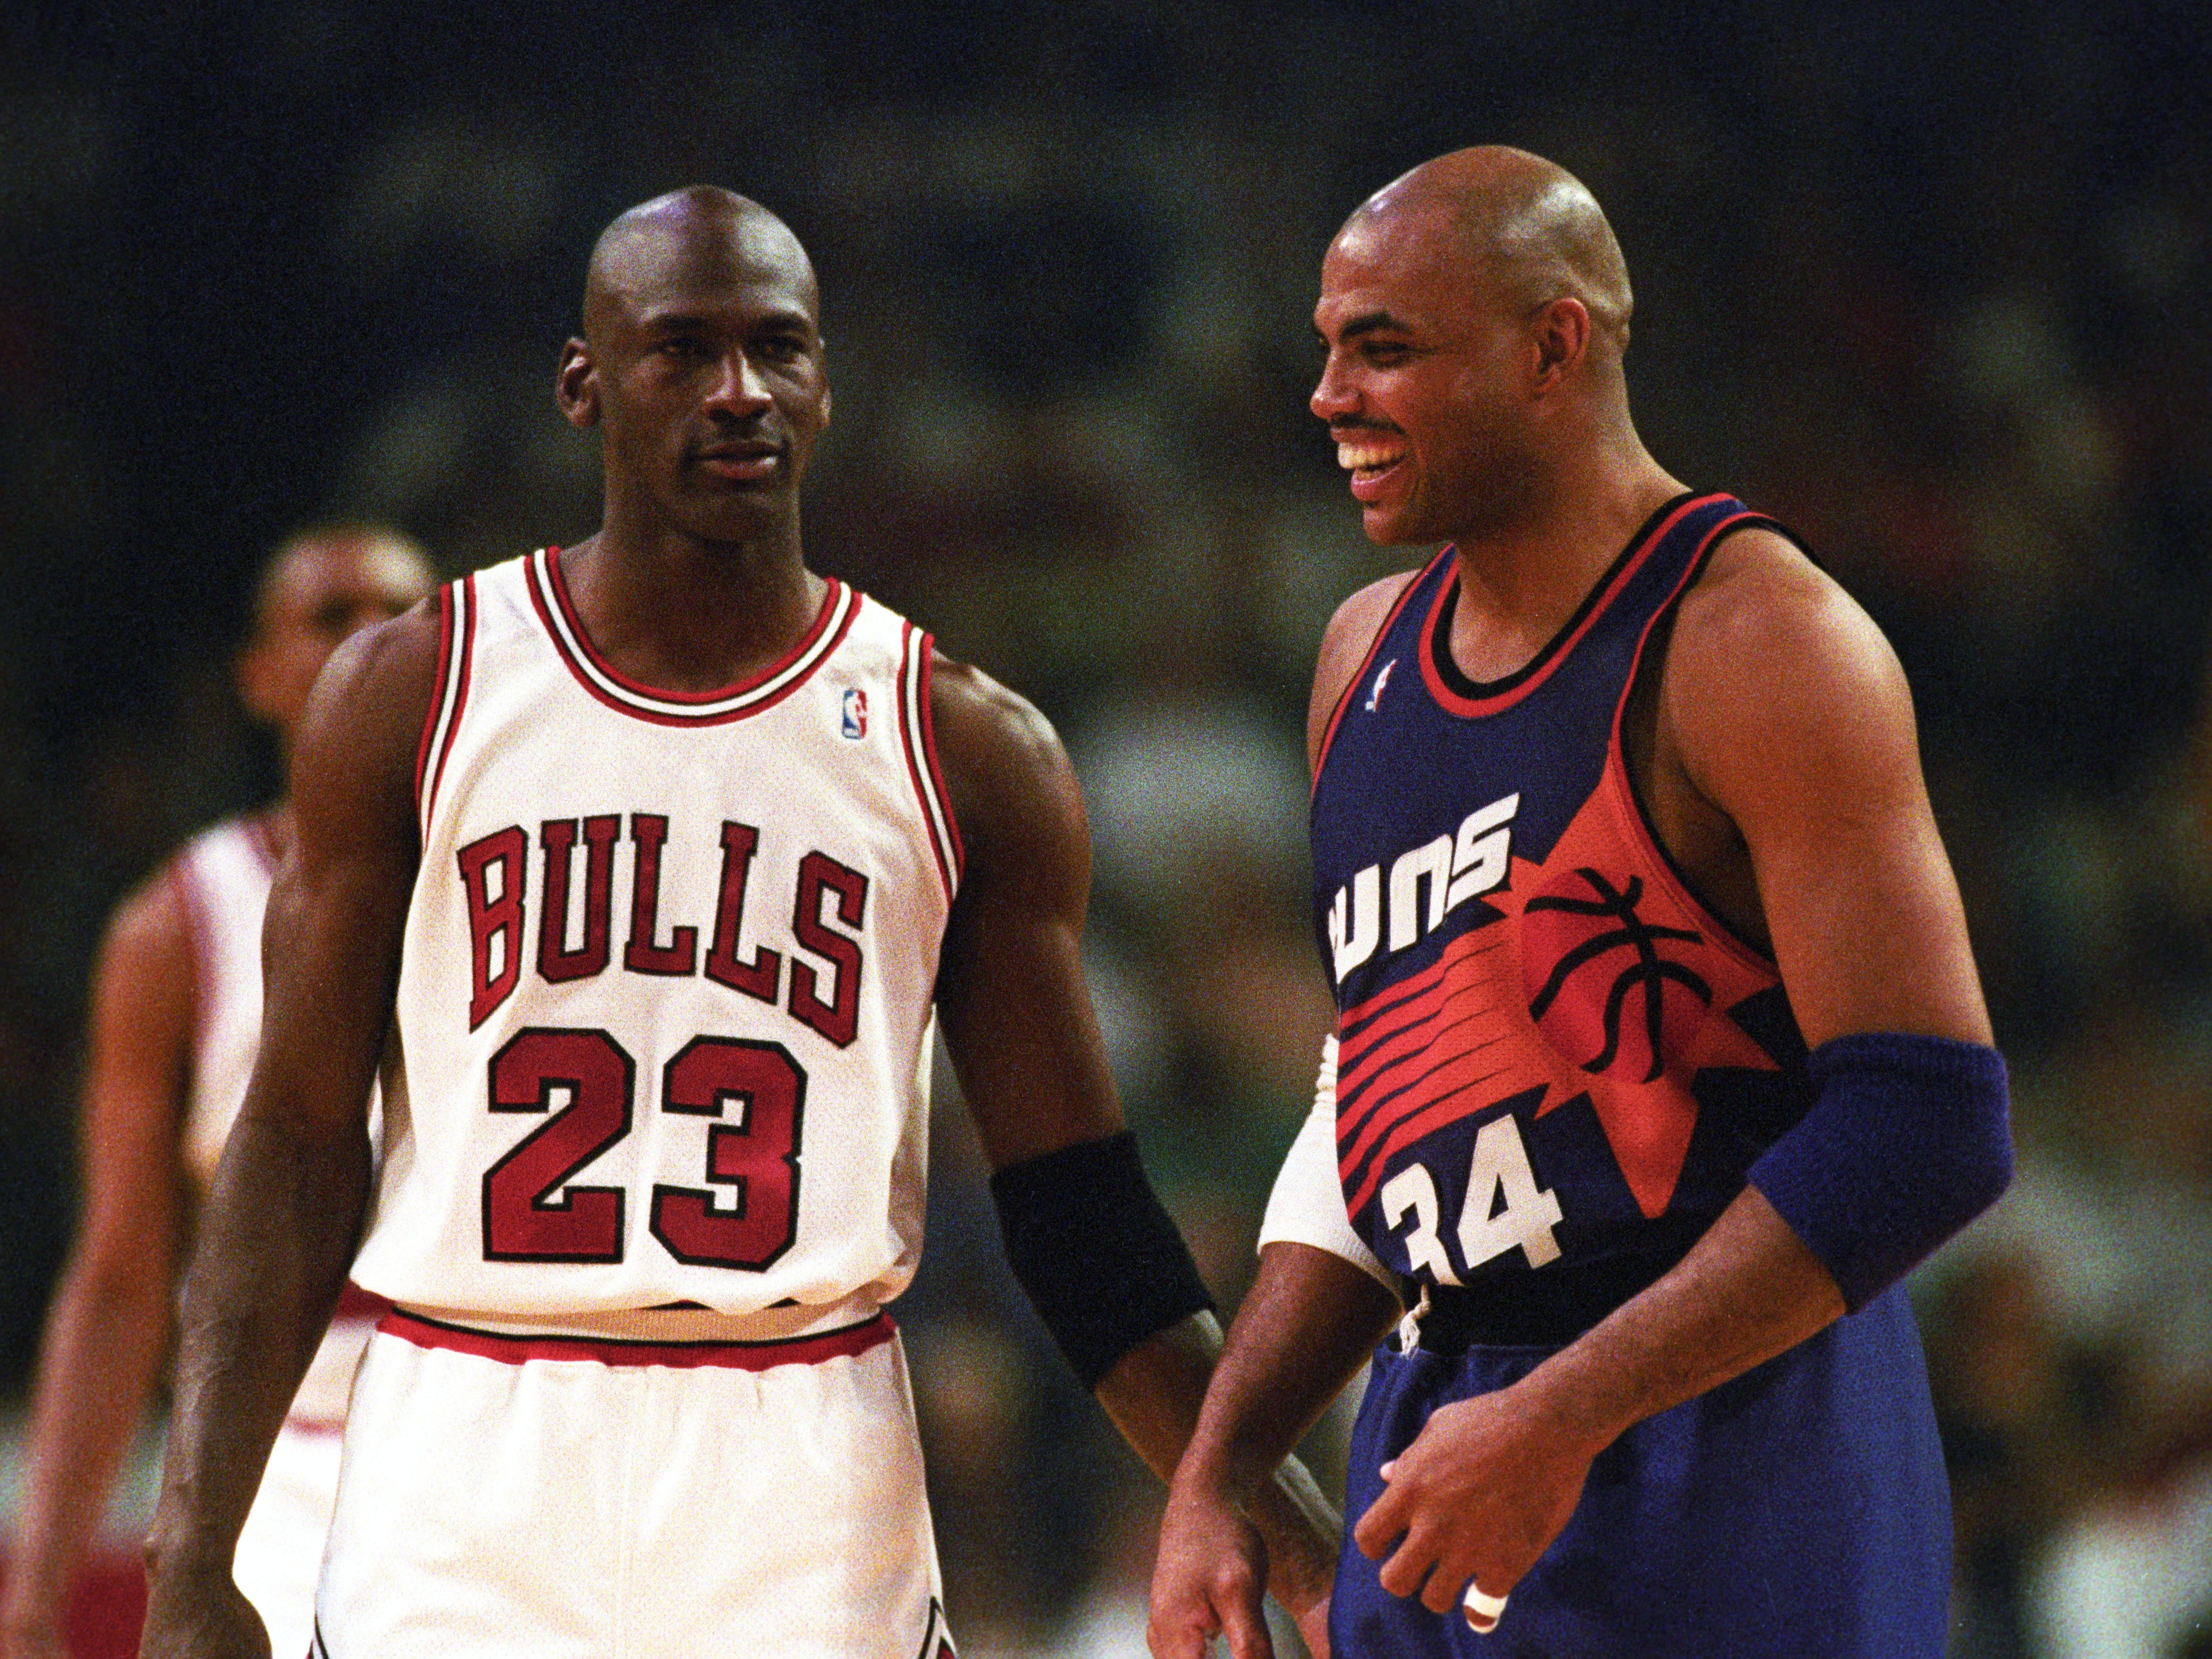 Michael Jordan and Charles Barkley during the 1993 NBA Finals in Chicago.